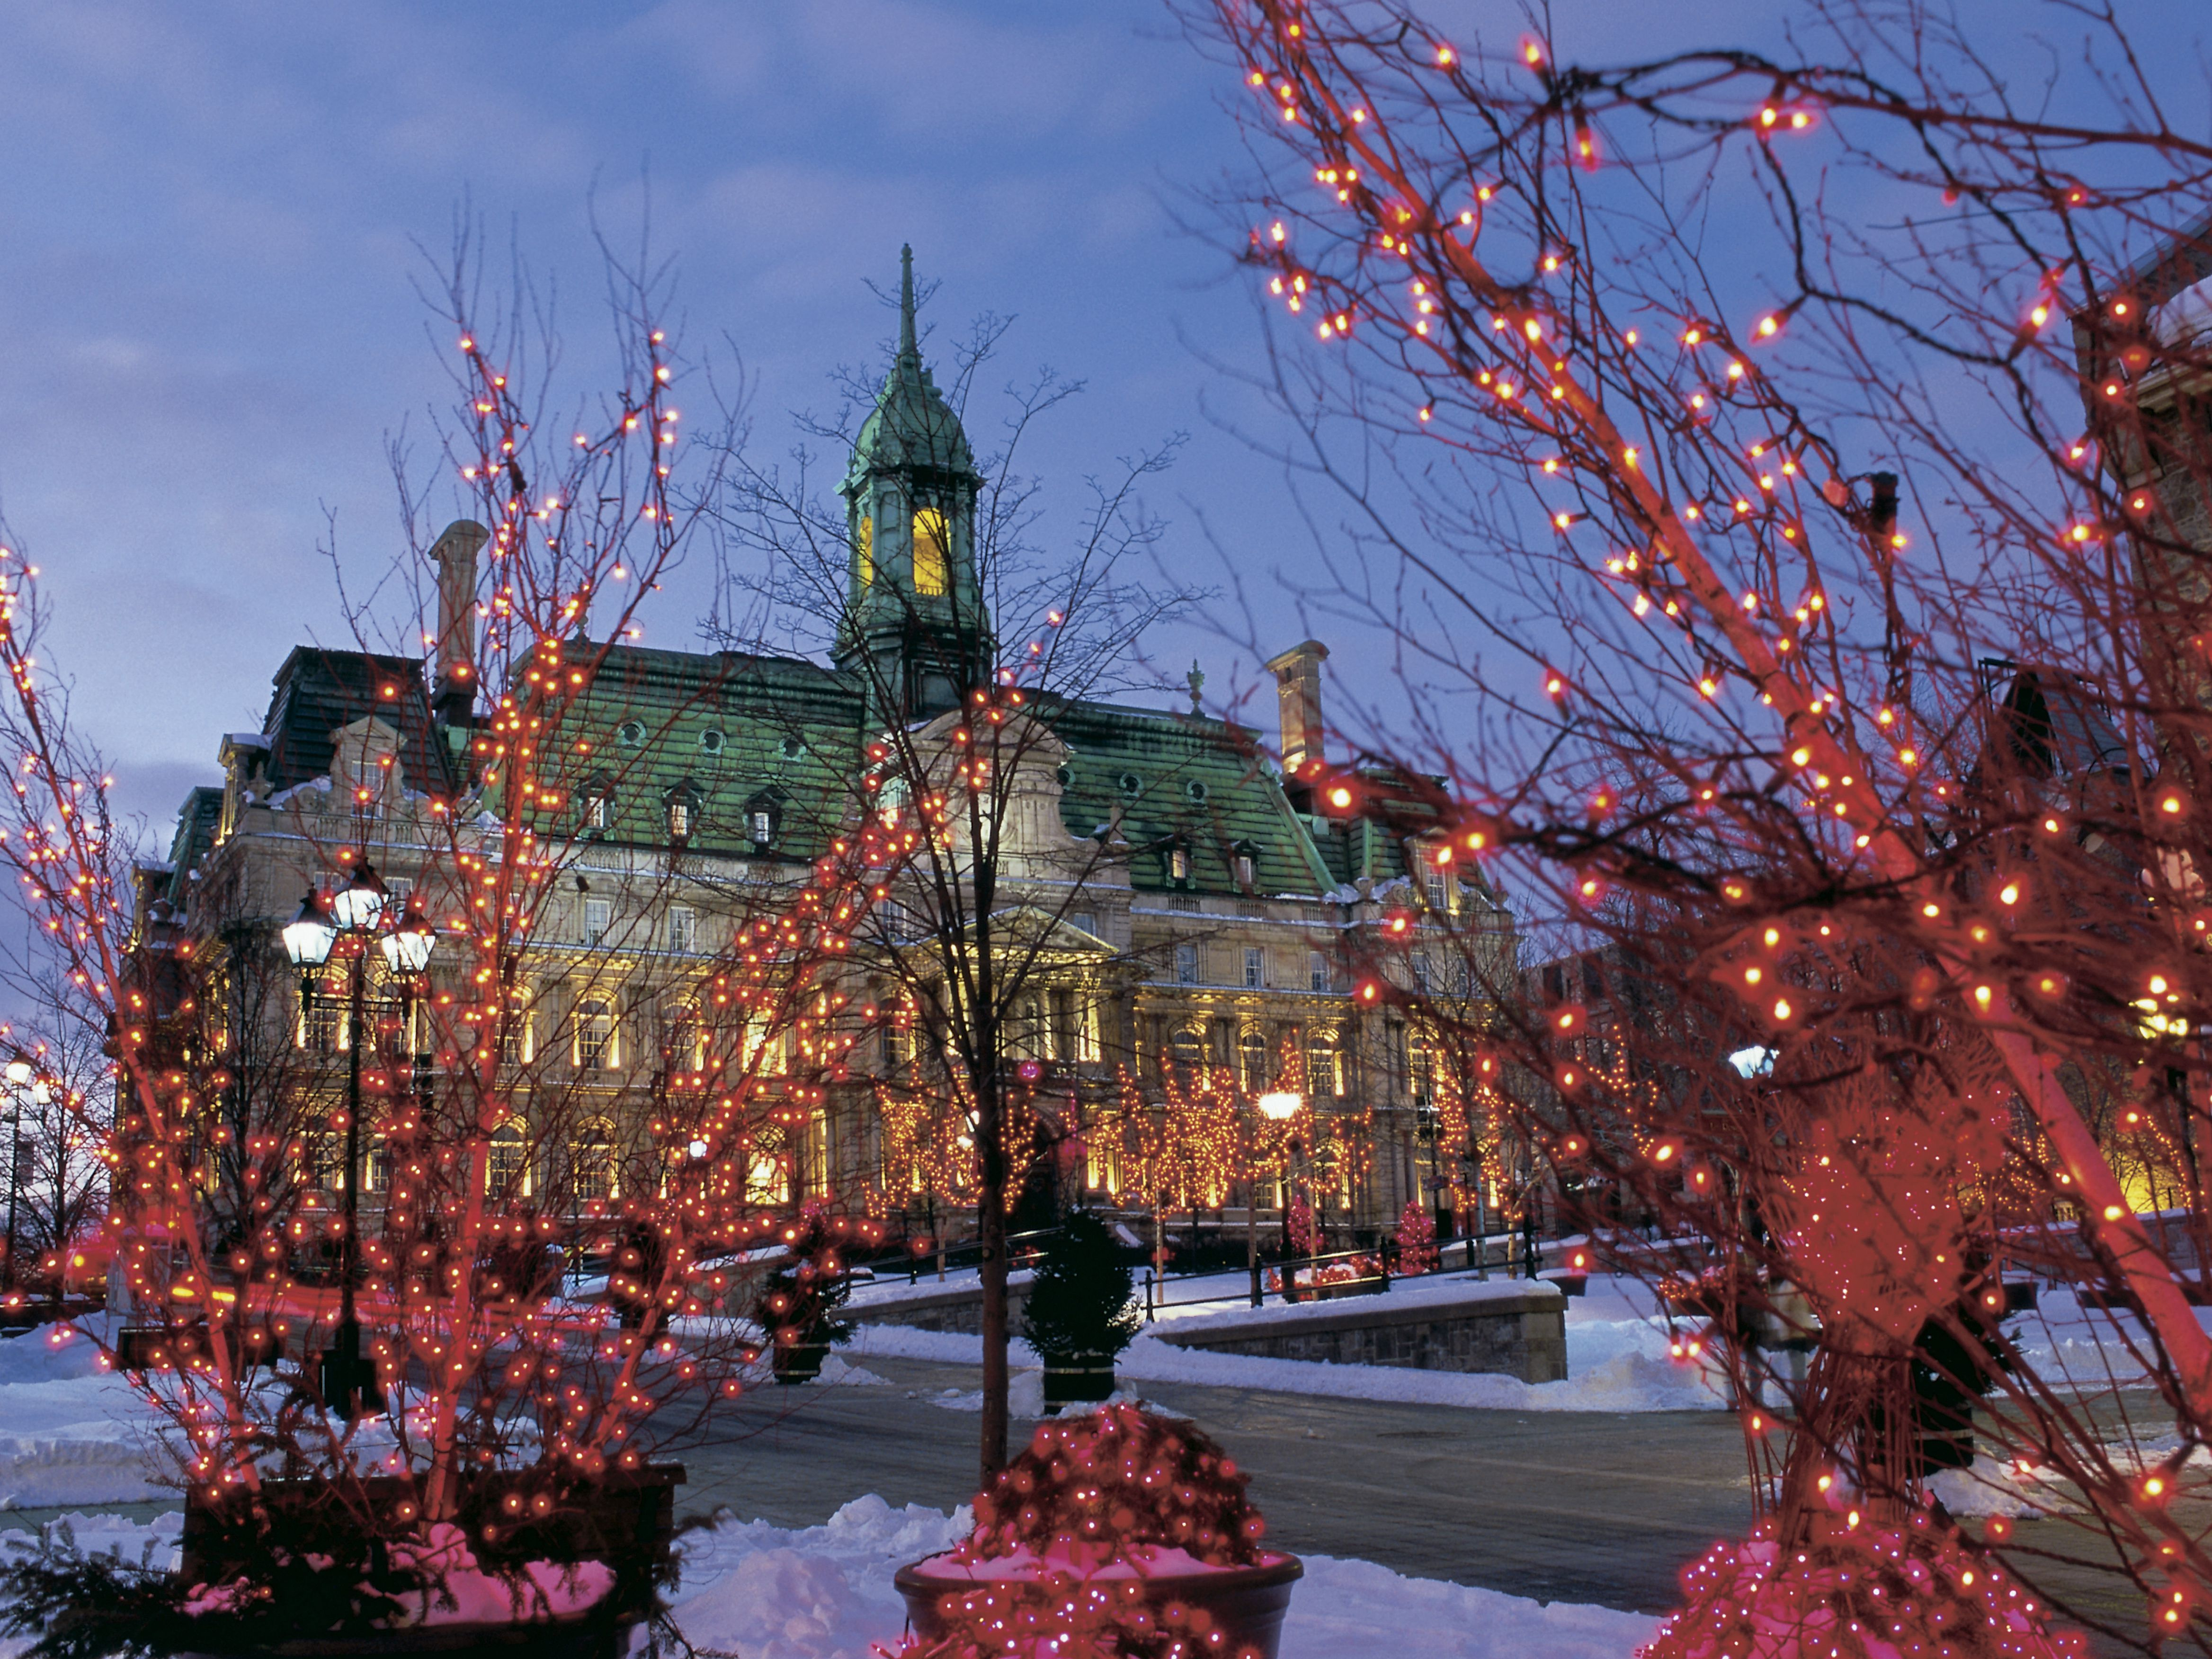 Montreal Christmas Market 2020 Things to Do for Christmas in Montreal